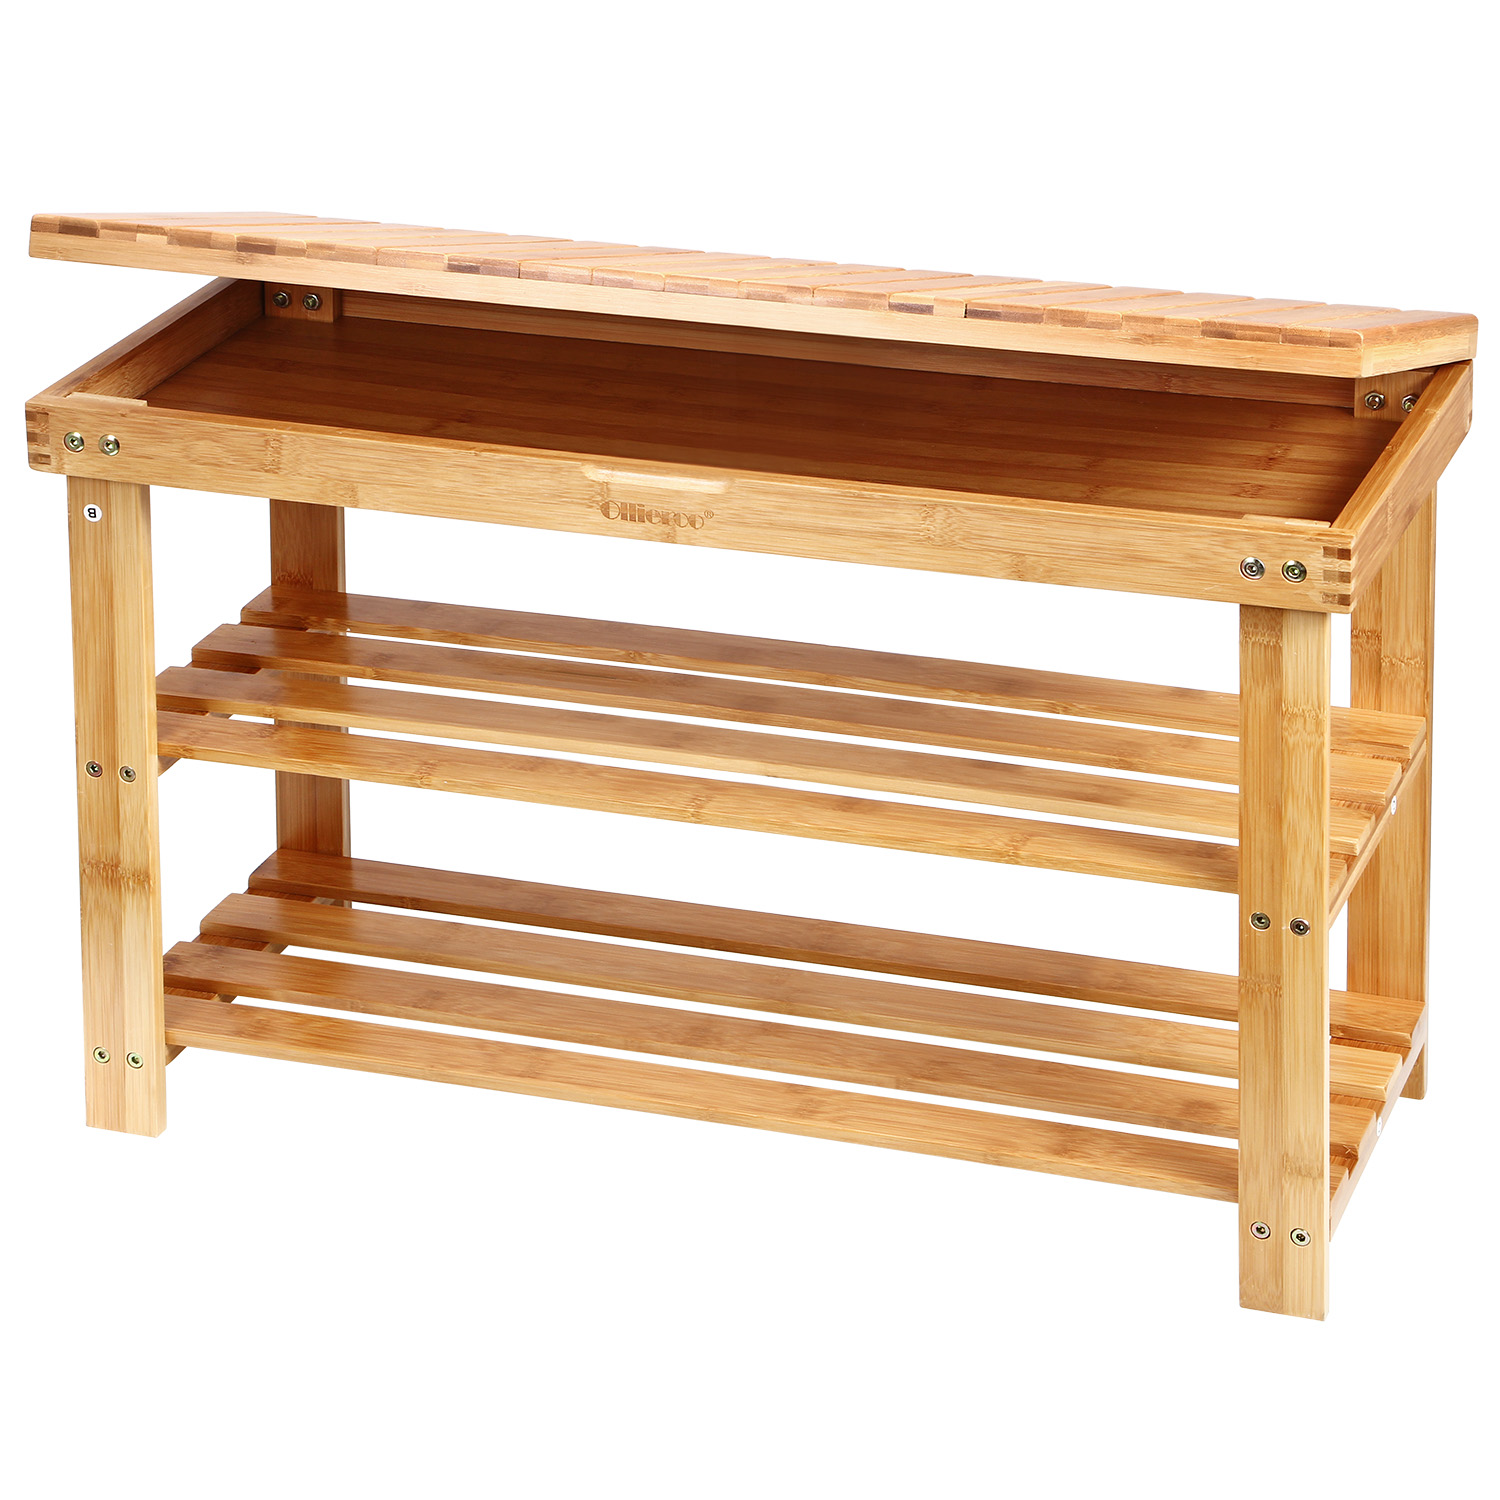 Mllieroo Bamboo 2 Tier Shoe Rack Storage Bench Organizer Entryway Organizing Shelf with Storage Drawer